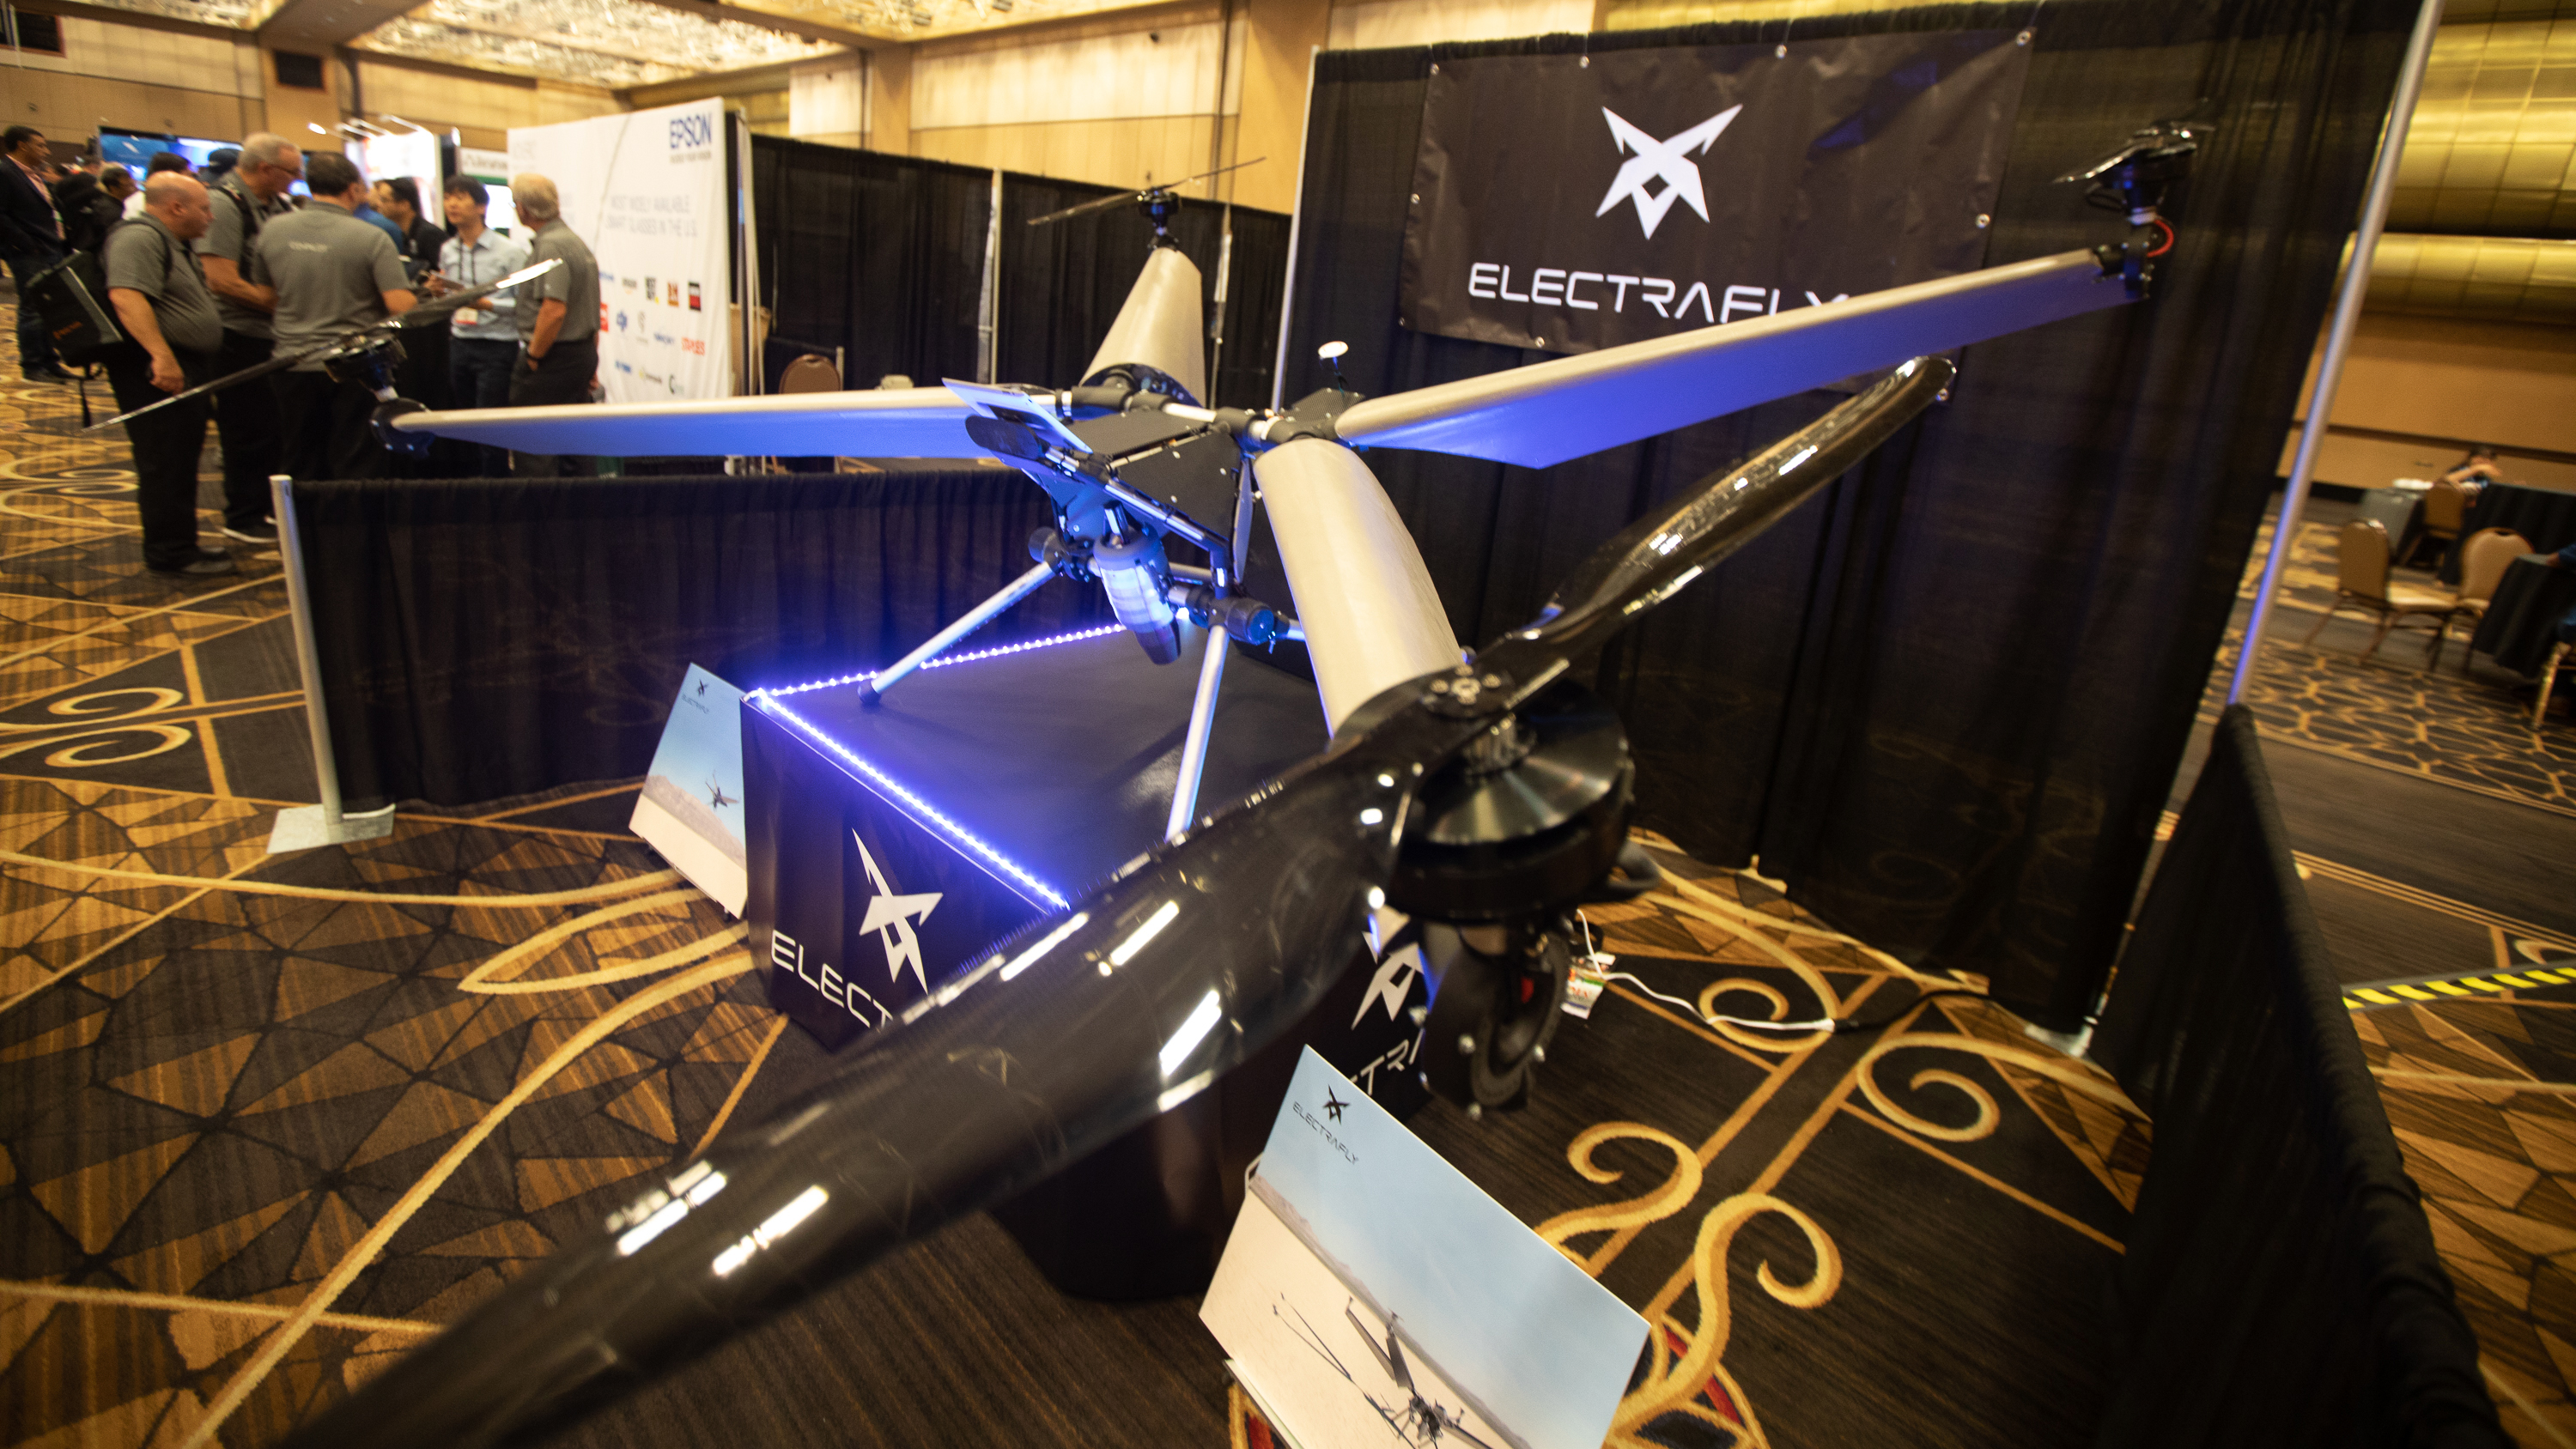 The Electrafly prototype was on display at Interdrone in Las Vegas, a first public appearance for a unique aircraft that has yet to fly without a tether. The unique design includes four airfoils, four electric motors, a small turbojet engine mounted below the saddle, and a hybrid electric power system. Photo by Jim Moore.